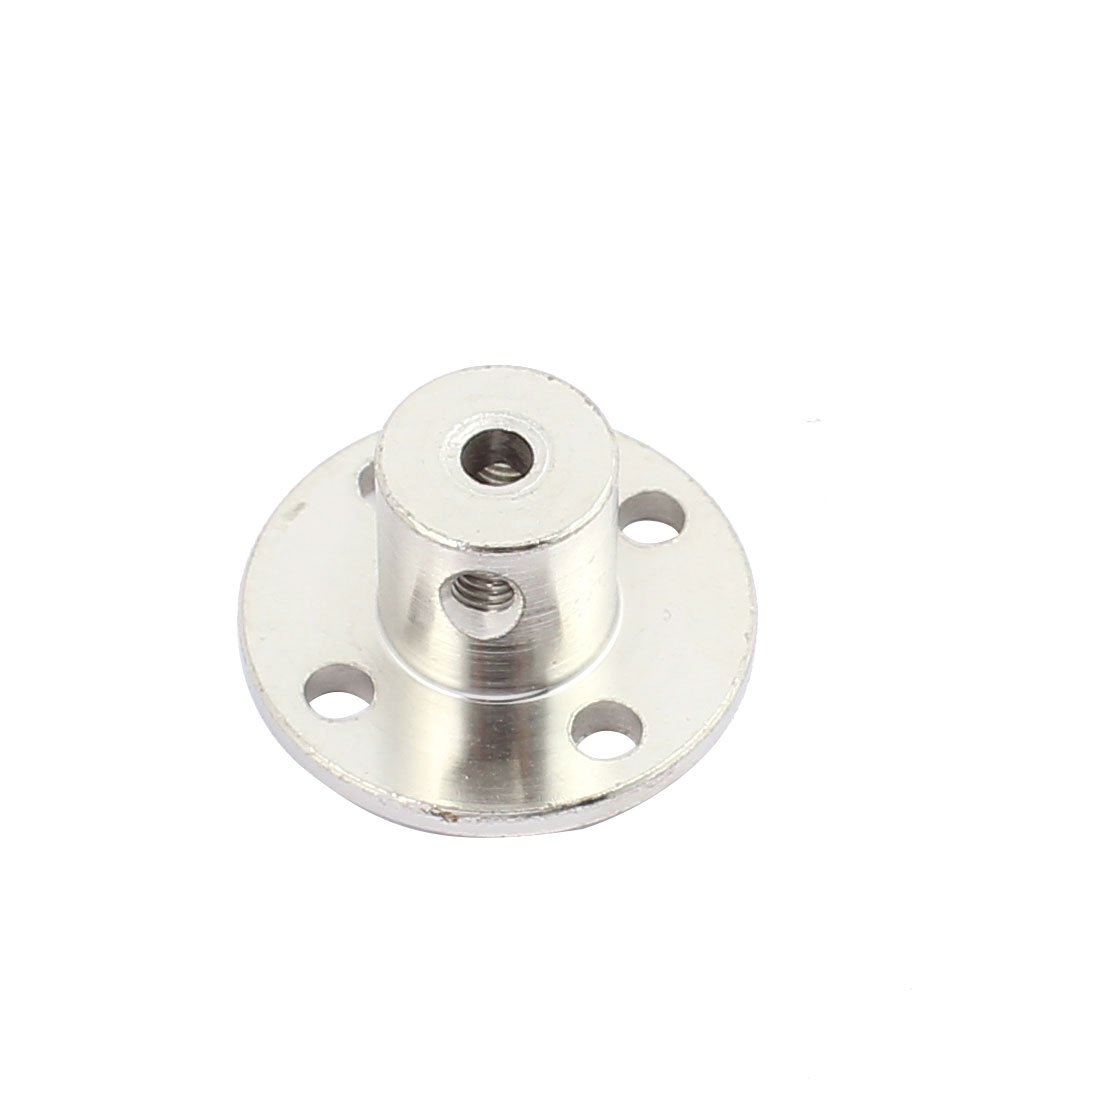 uxcell® Shaft Coupler 3mm x 4mm Connector Adapter for RC Airplane Boat Motor L20XD9 Coupling Nuts Nuts